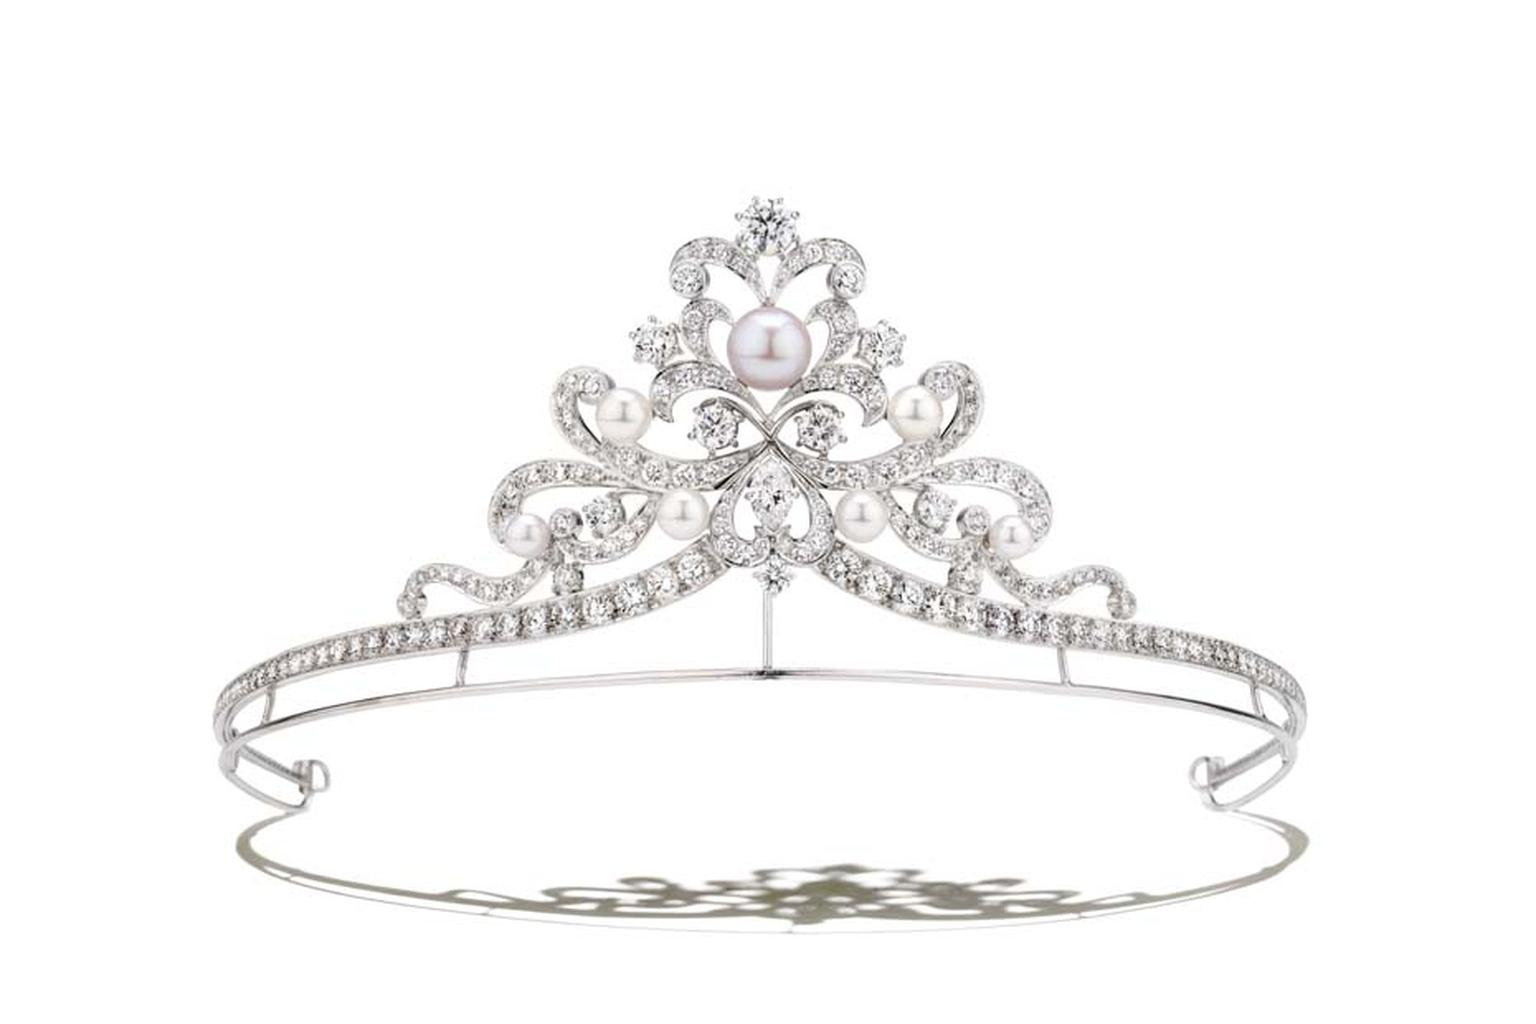 Pearl and diamond princess-style tiara from Garrard jewellery's new Bow collection.